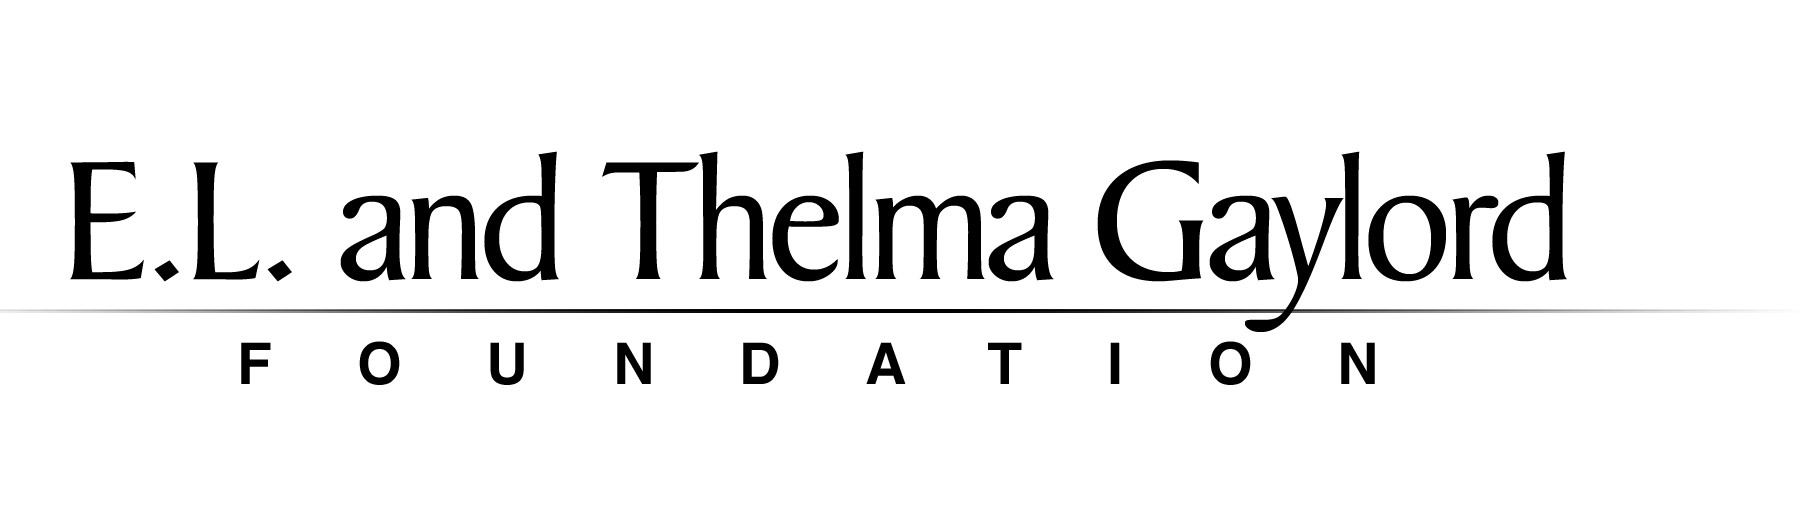 E.L. & Thelma Gaylord Foundation